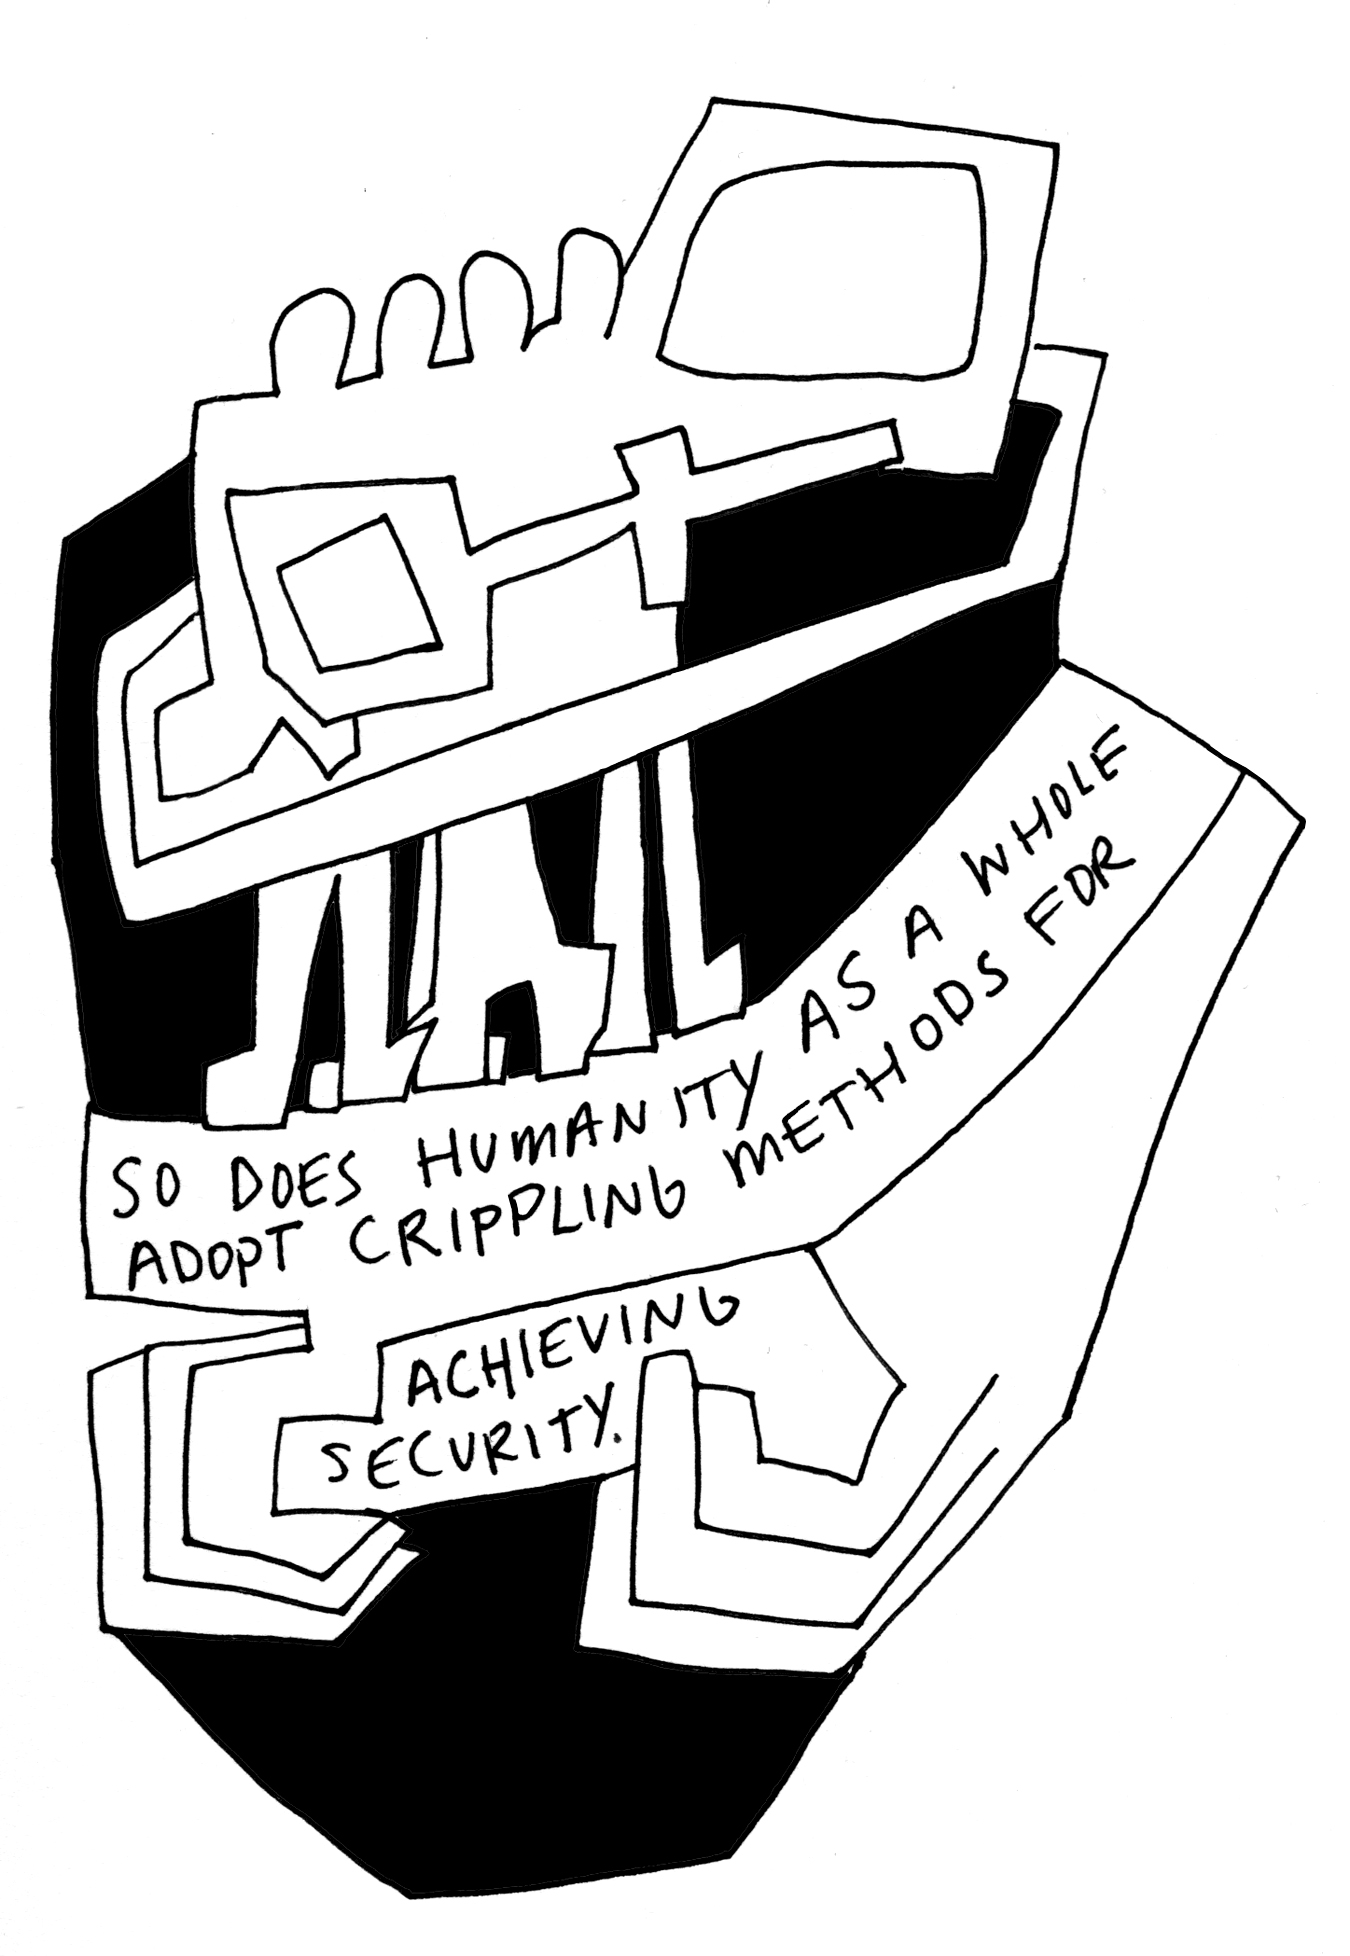 so does humanity as a whole-c3.jpg